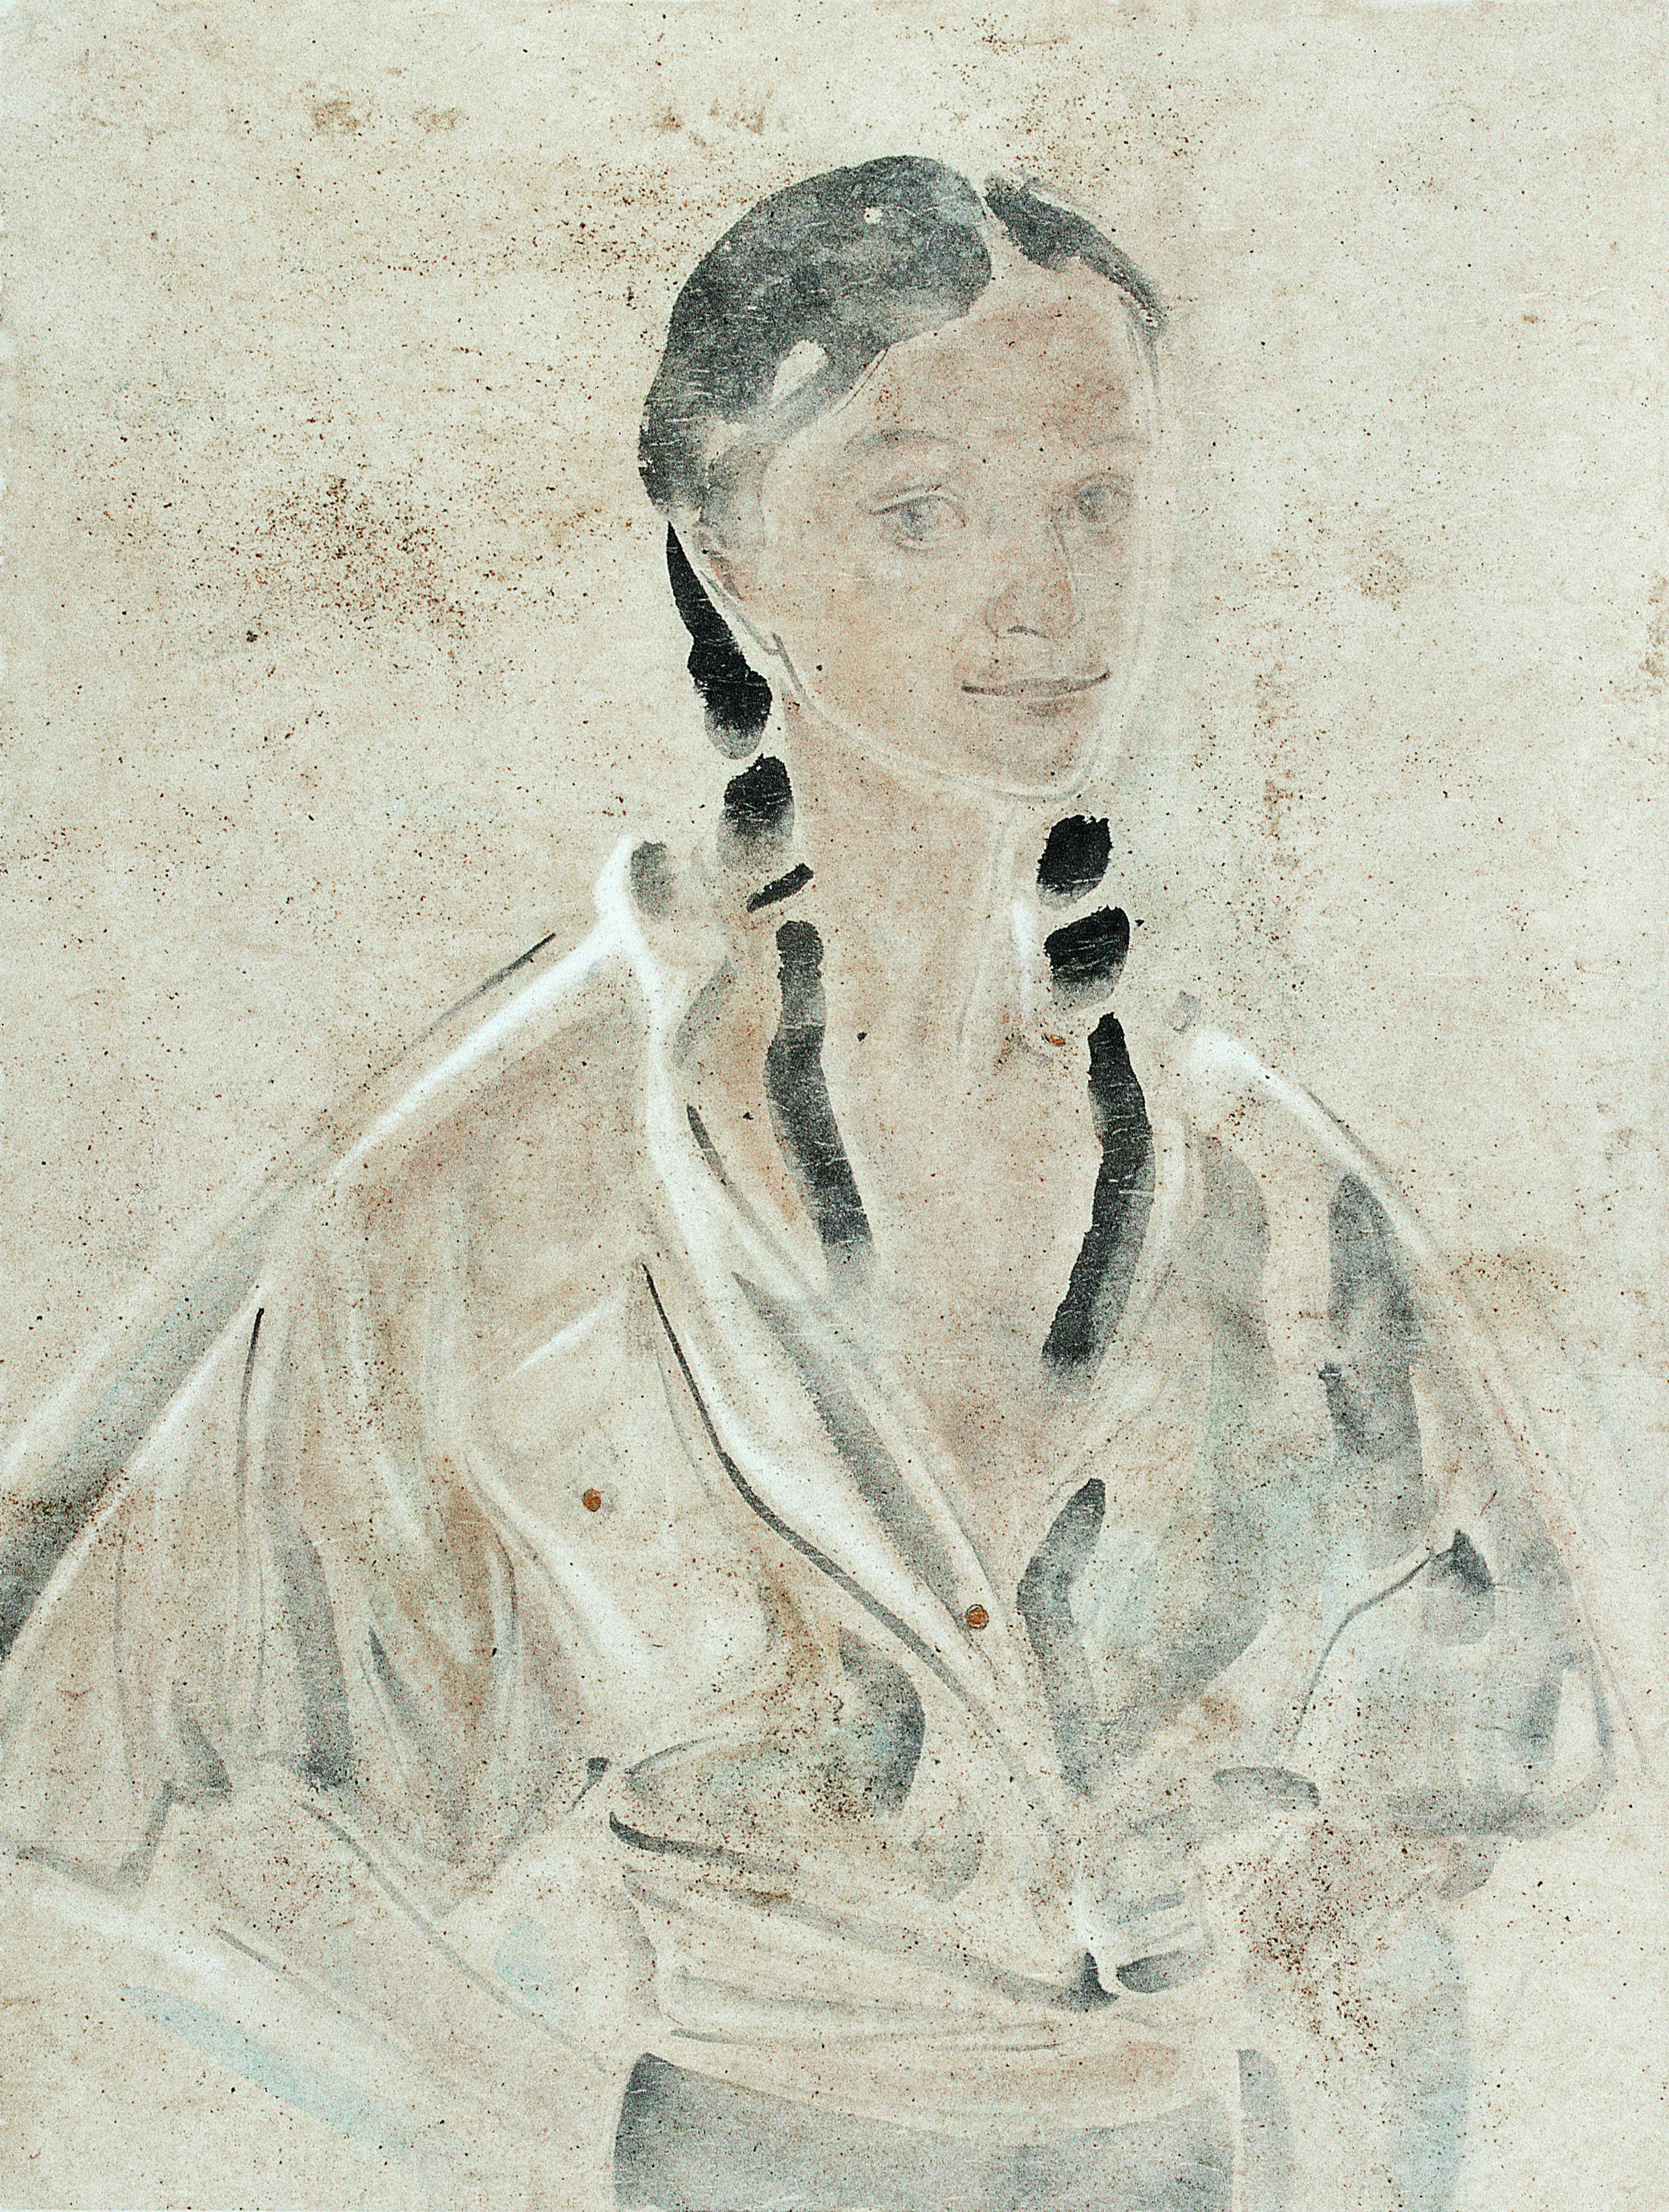 Pan Wenxun 潘汶汛, Silvery Grey 银灰石露, 2007, Chinese ink and mineral color on rice paper 纸本水墨设色, 110 x 70 cm